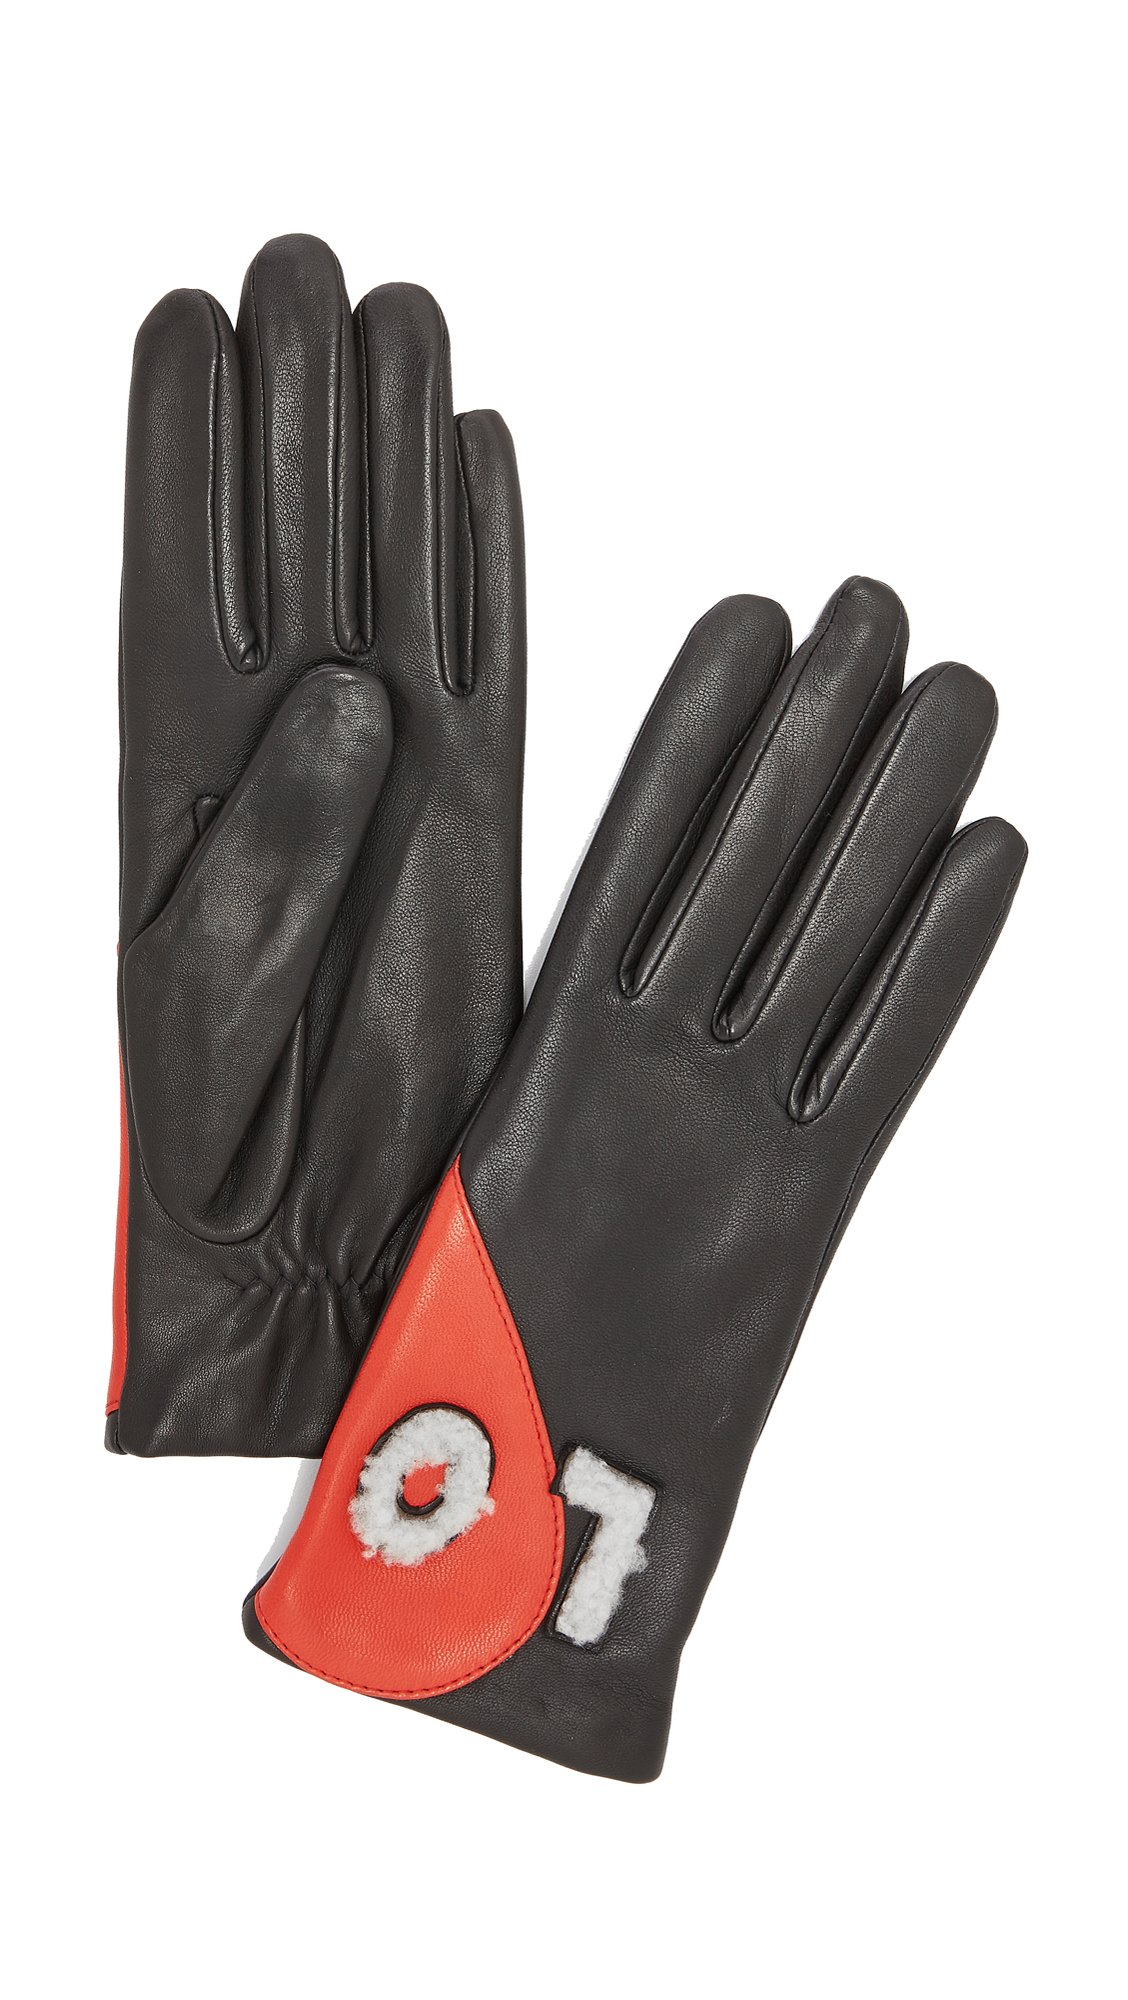 Agnelle Women's Love Leather Gloves, Black/Red, Small